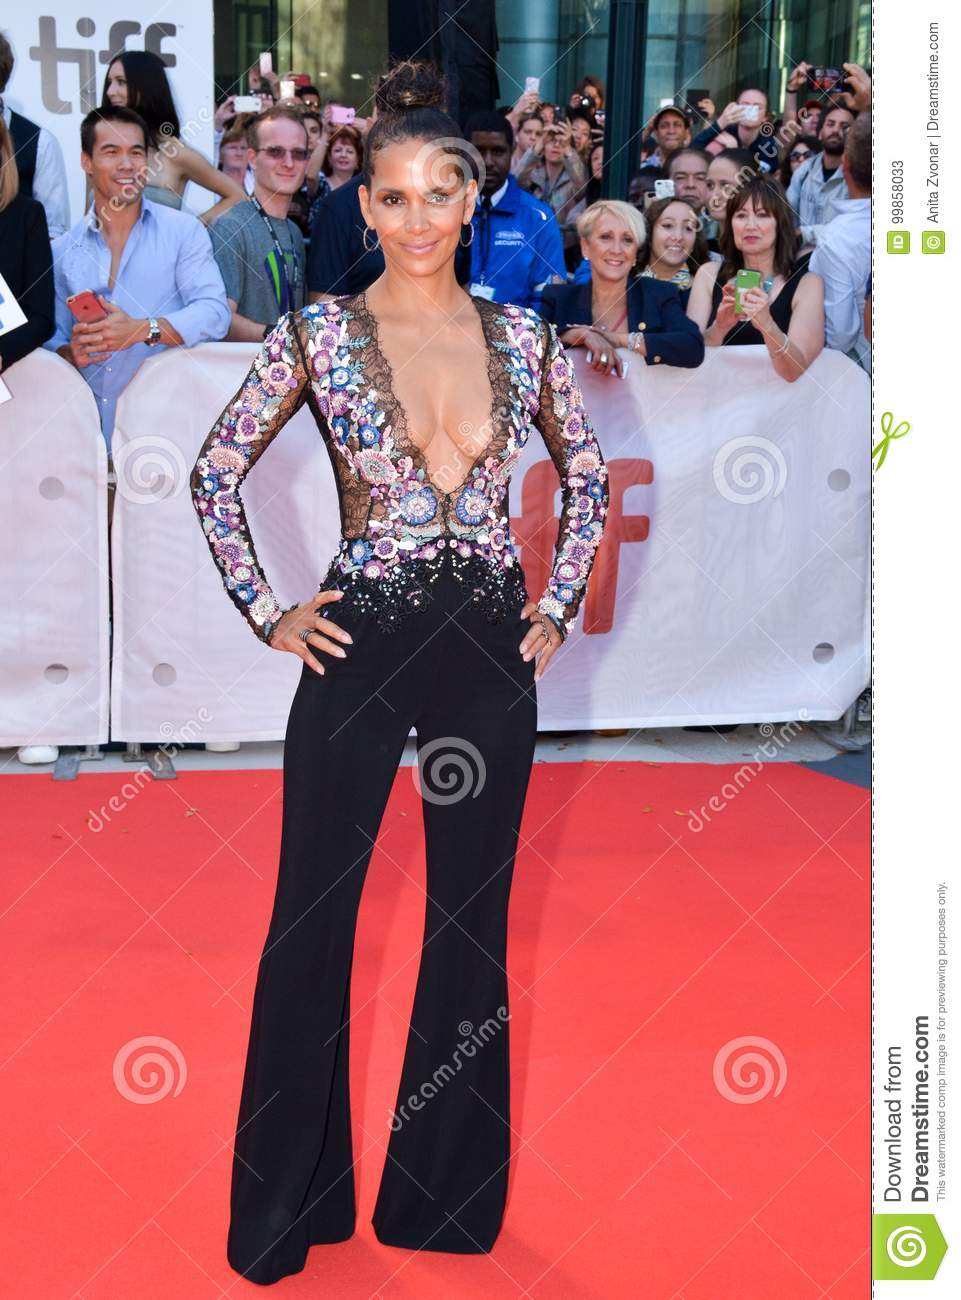 Halle Berry at the `Kings` premiere at toronto international film festival in toronto